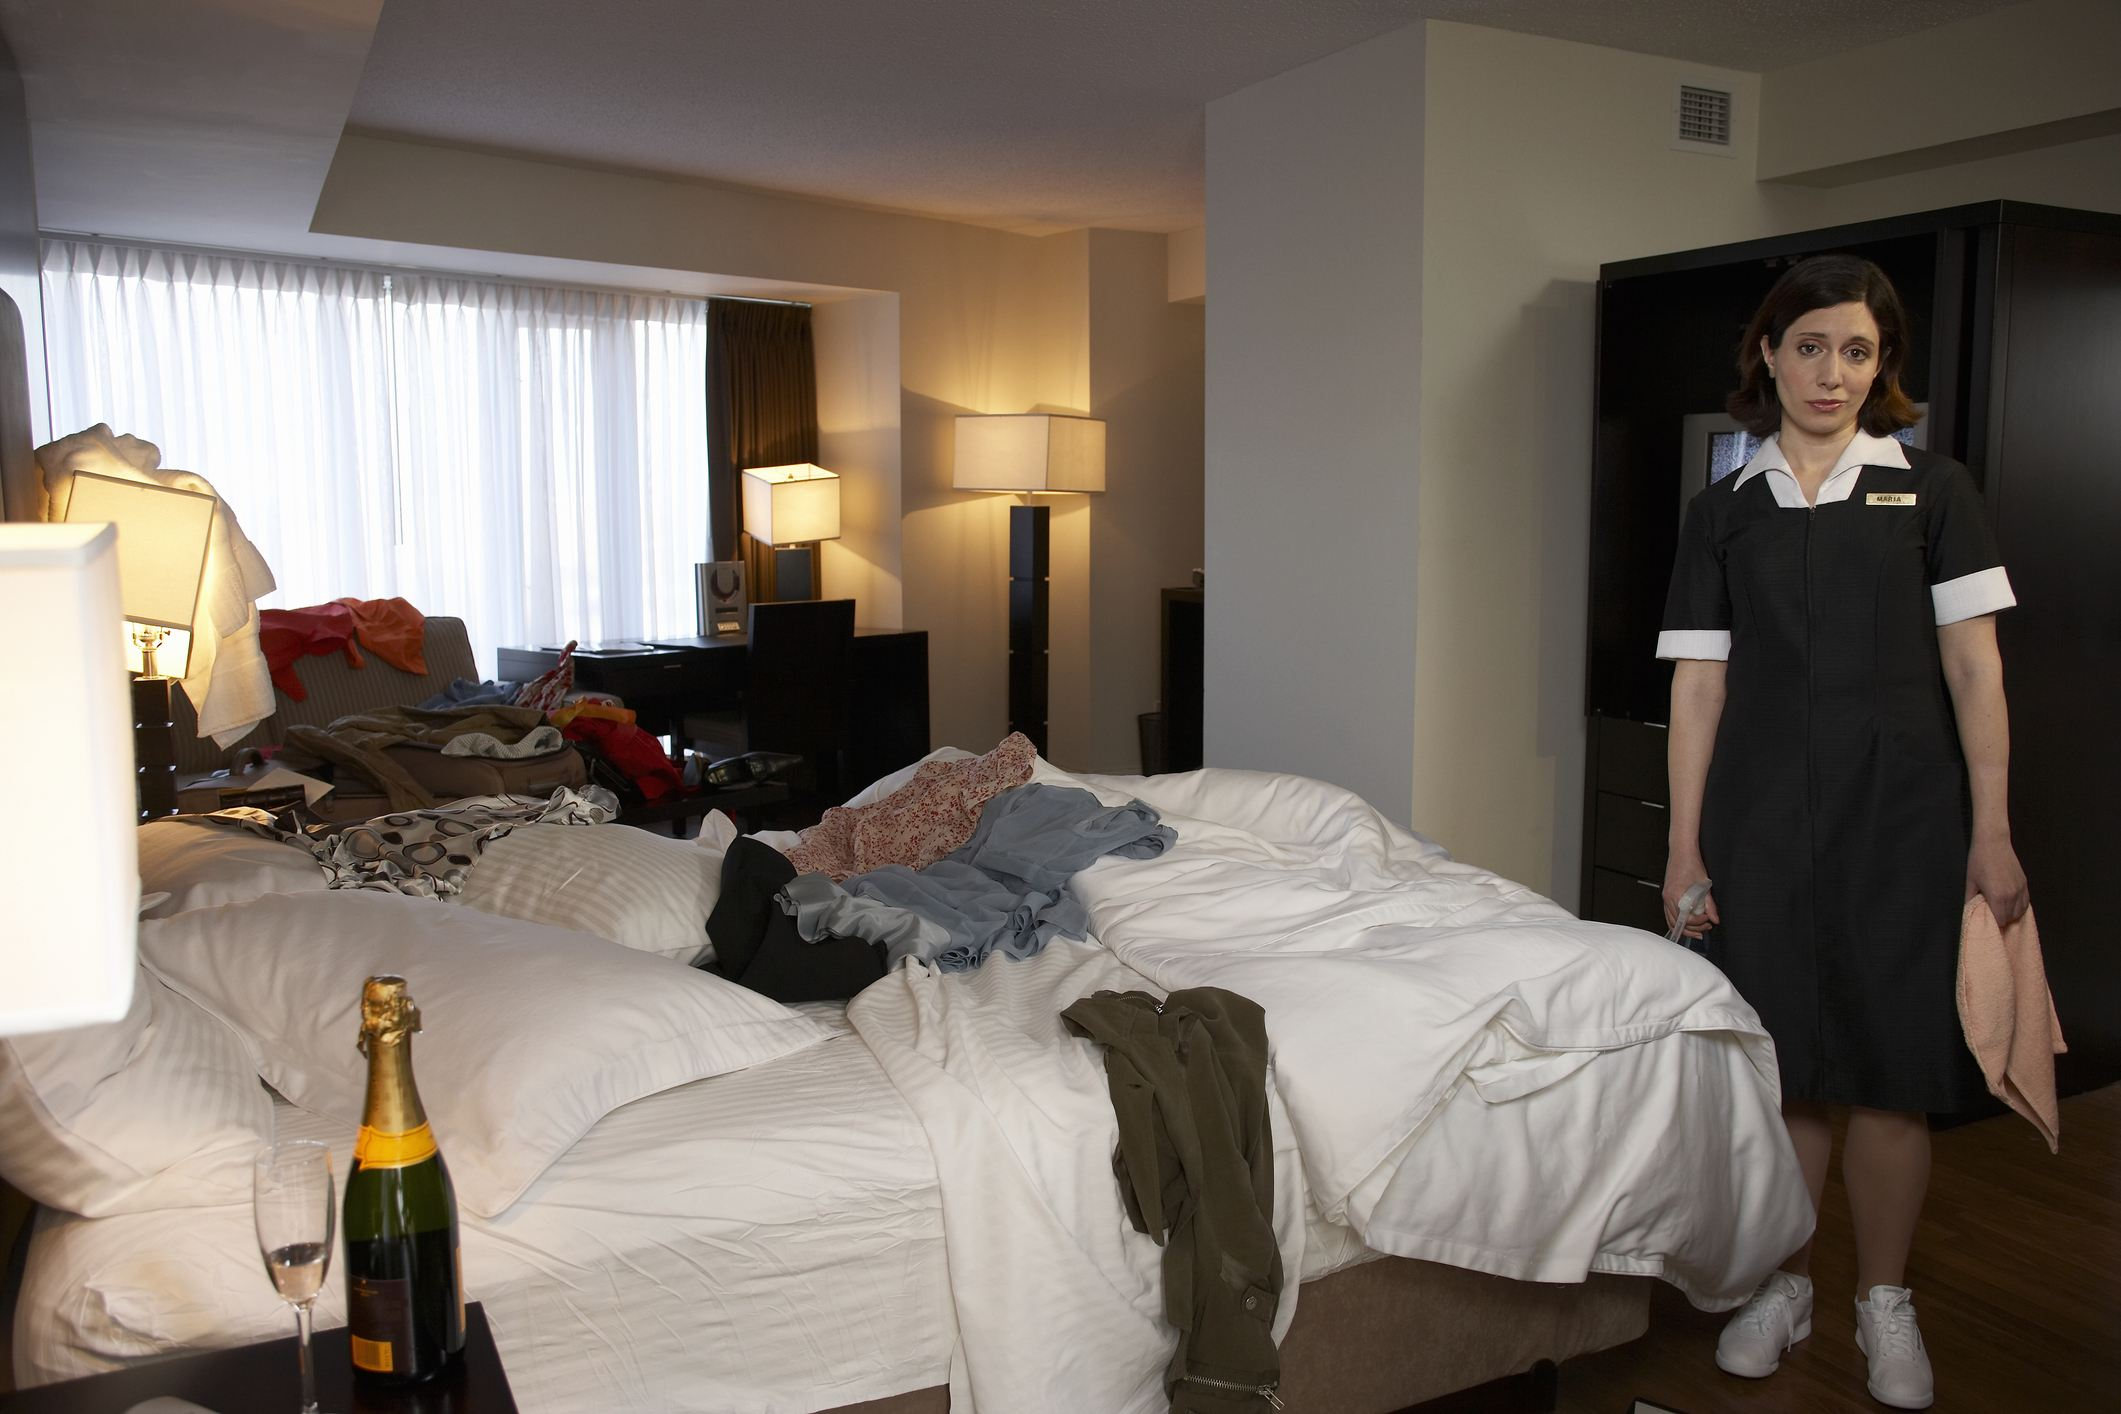 Chambermaid standing in trashed hotel room